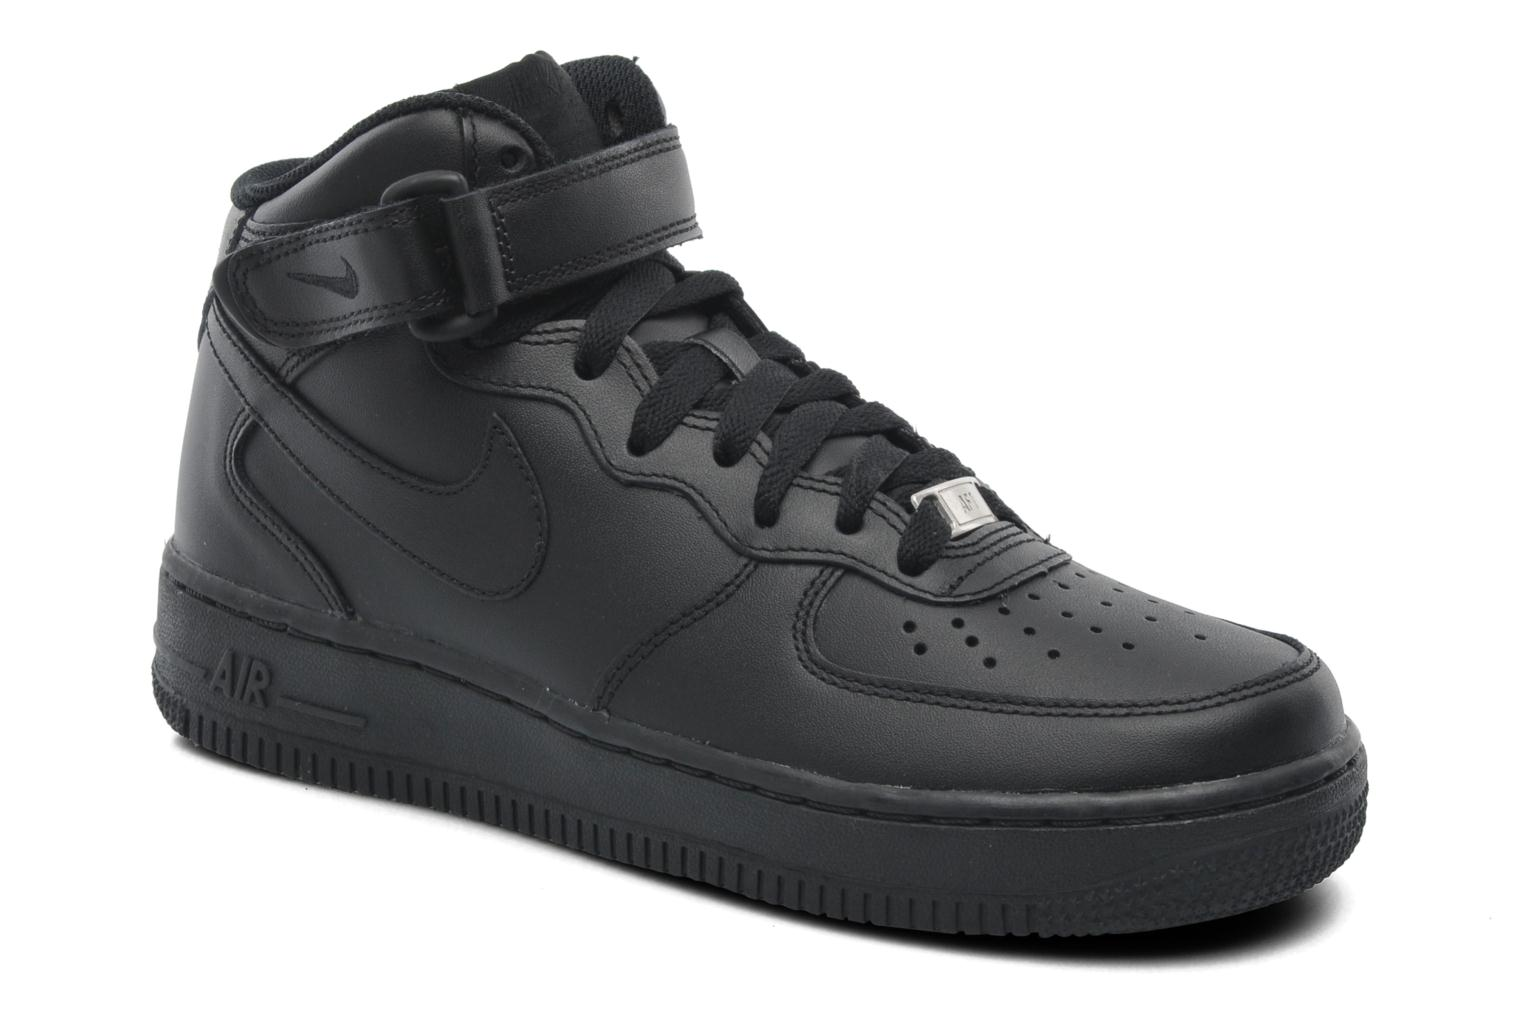 nike-air force 1-damen-schwarz-366731-001-schwarze-sneakers-damen